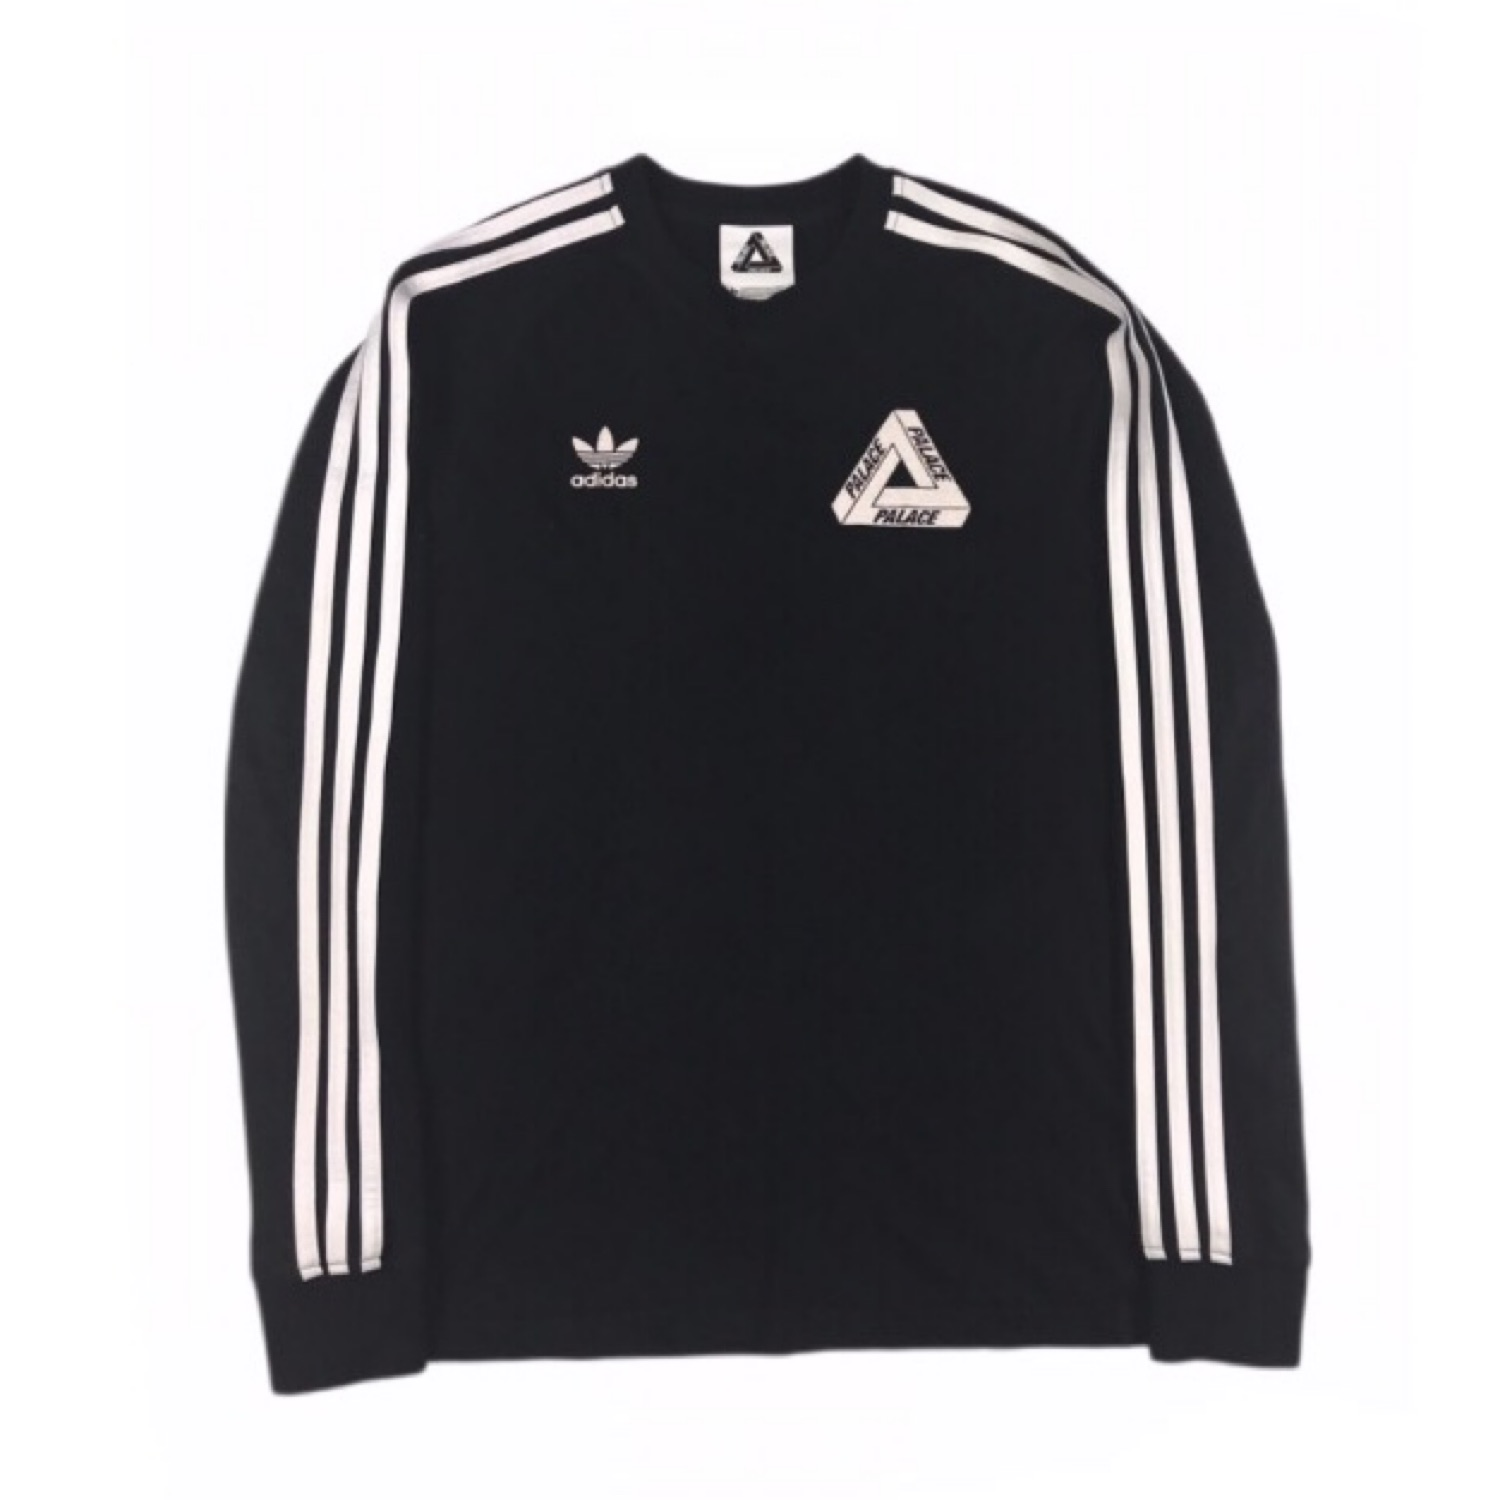 online here reliable quality official shop Palace X Adidas Longsleeve